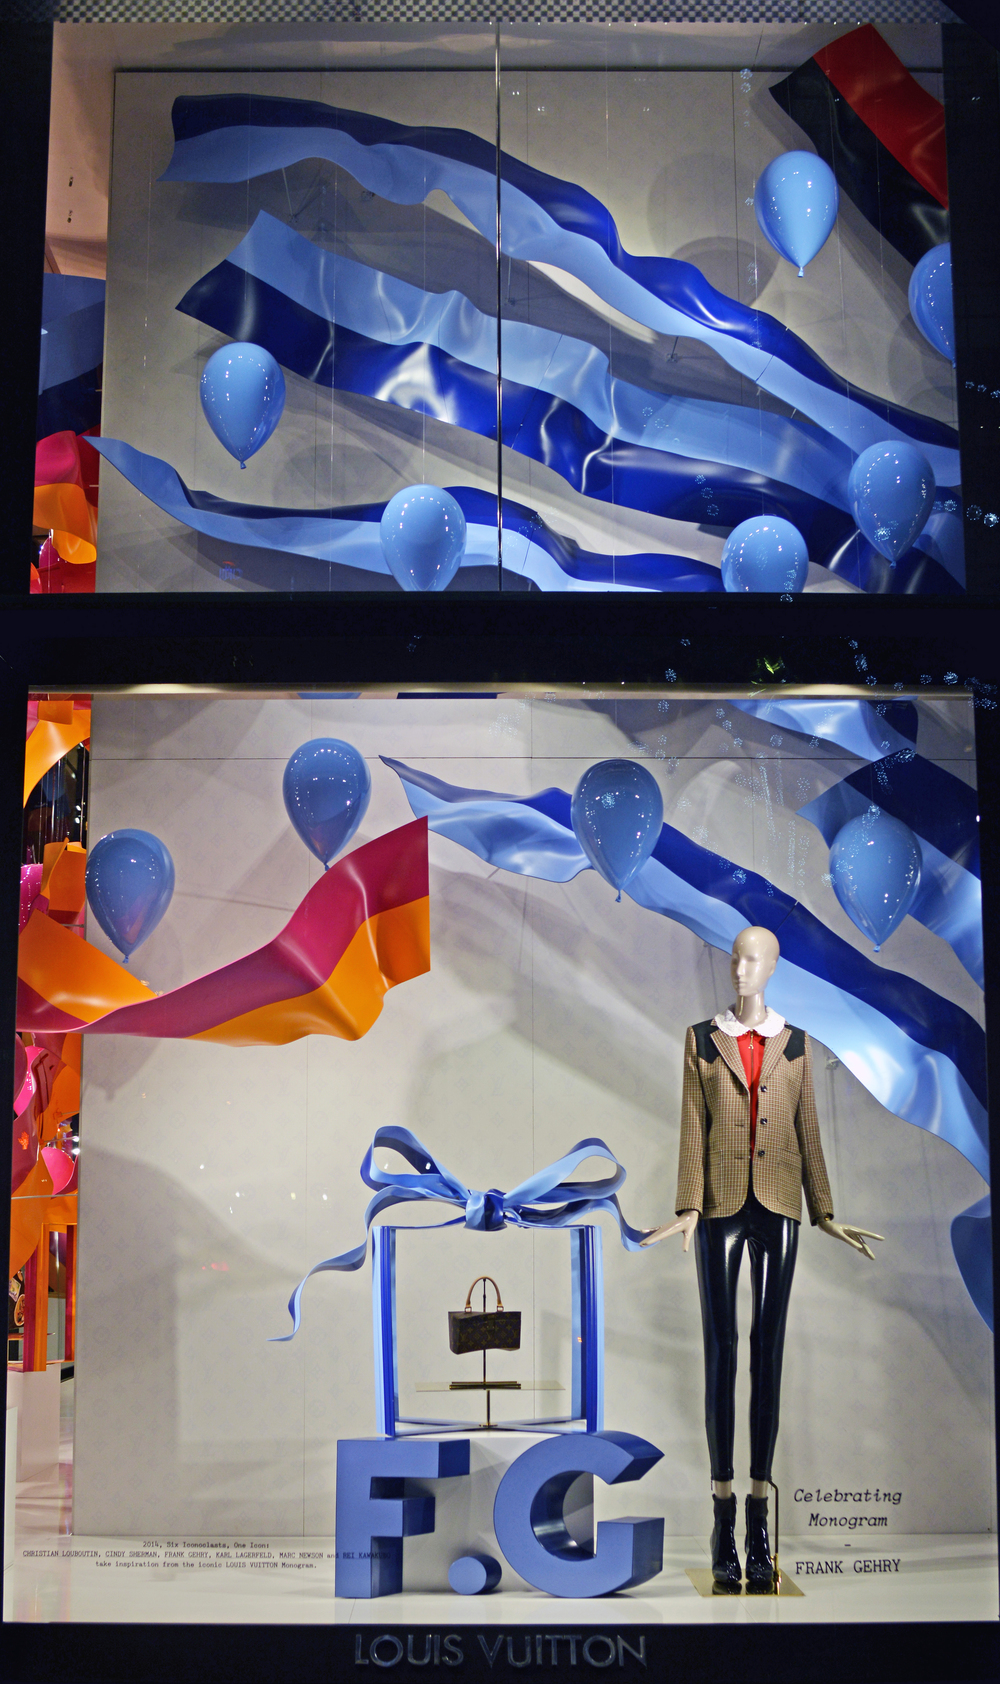 Window Display for Frank Gehry - Louis Vuitton